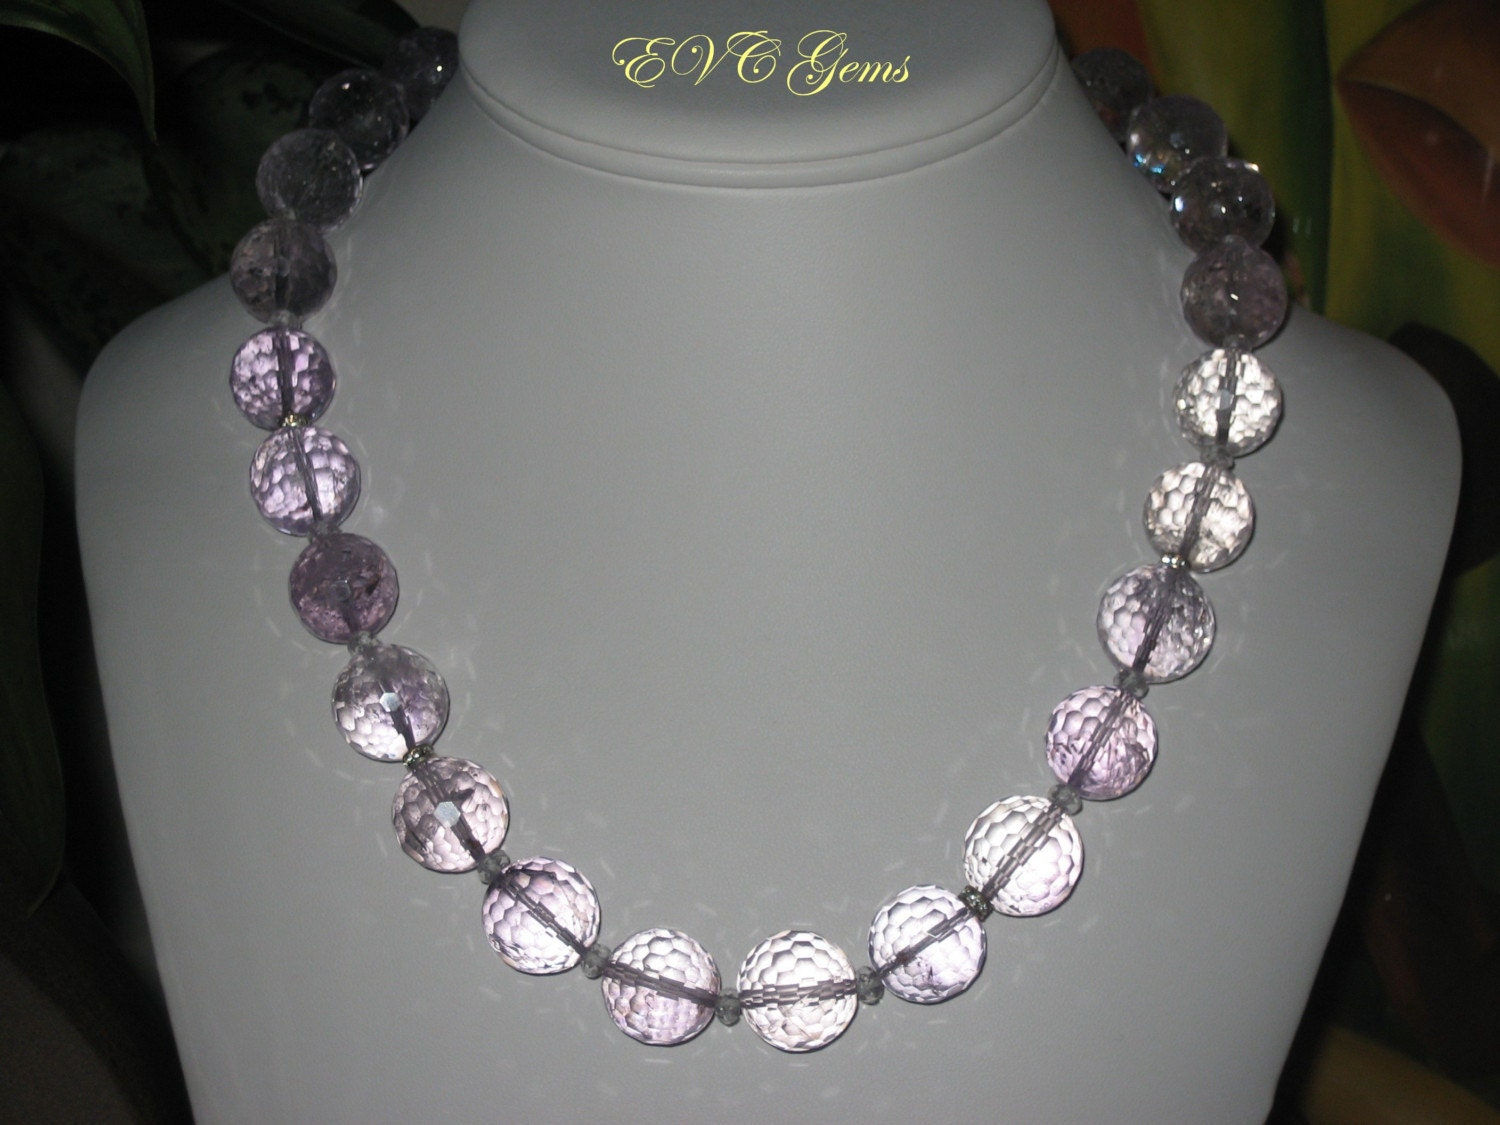 Etsy :: evcgems :: SALE Light Amethyst Bauble Necklace by EVC Gems from etsy.com